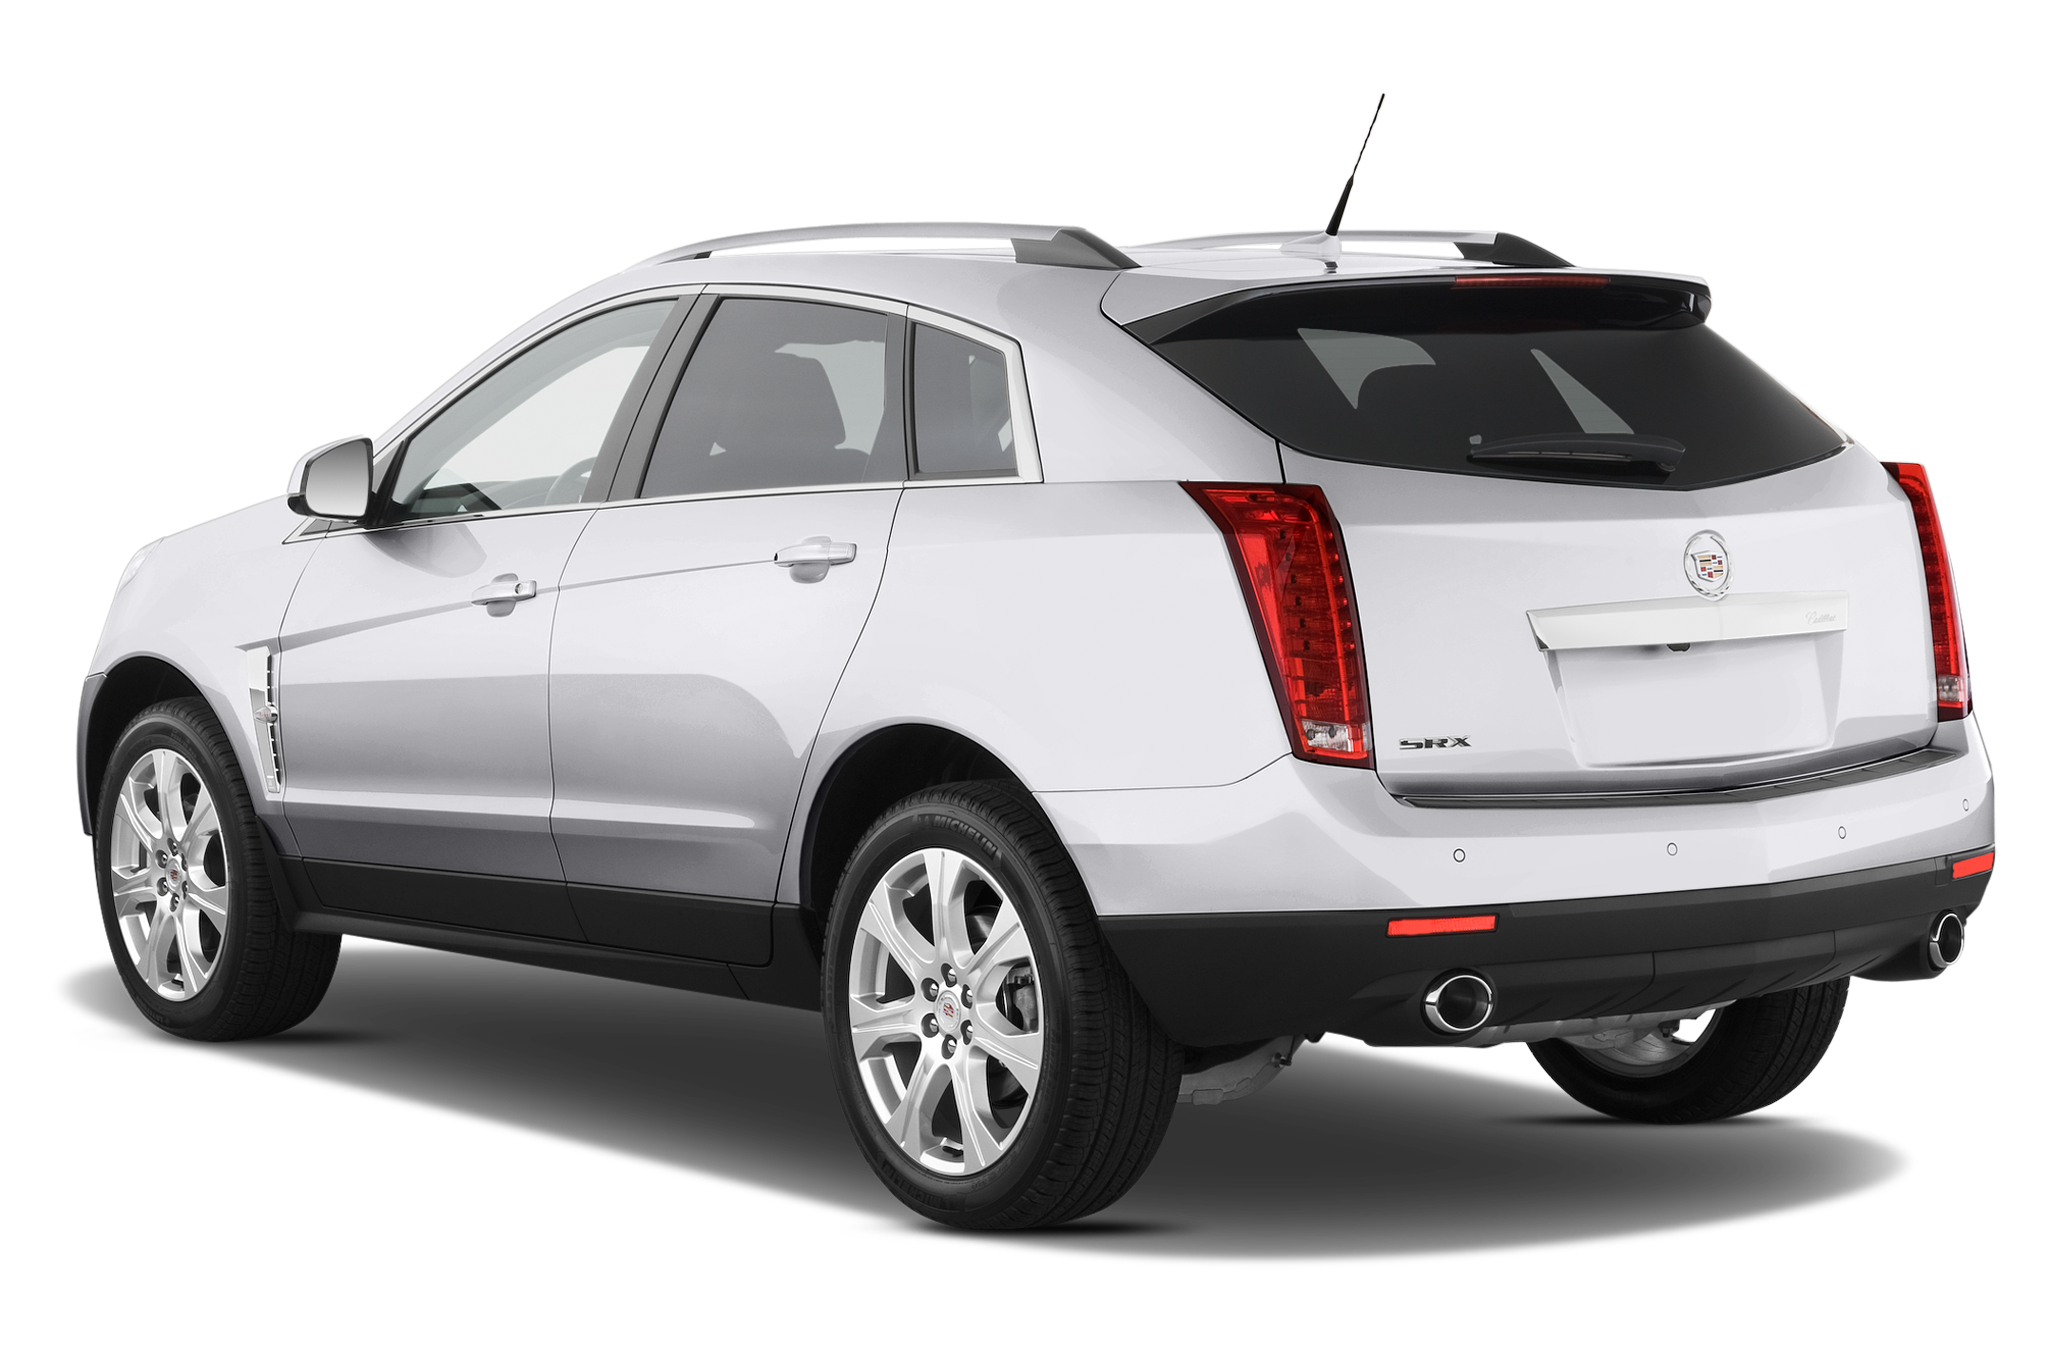 cadillac exotic wallpaper station of diesel wallpapers srx car